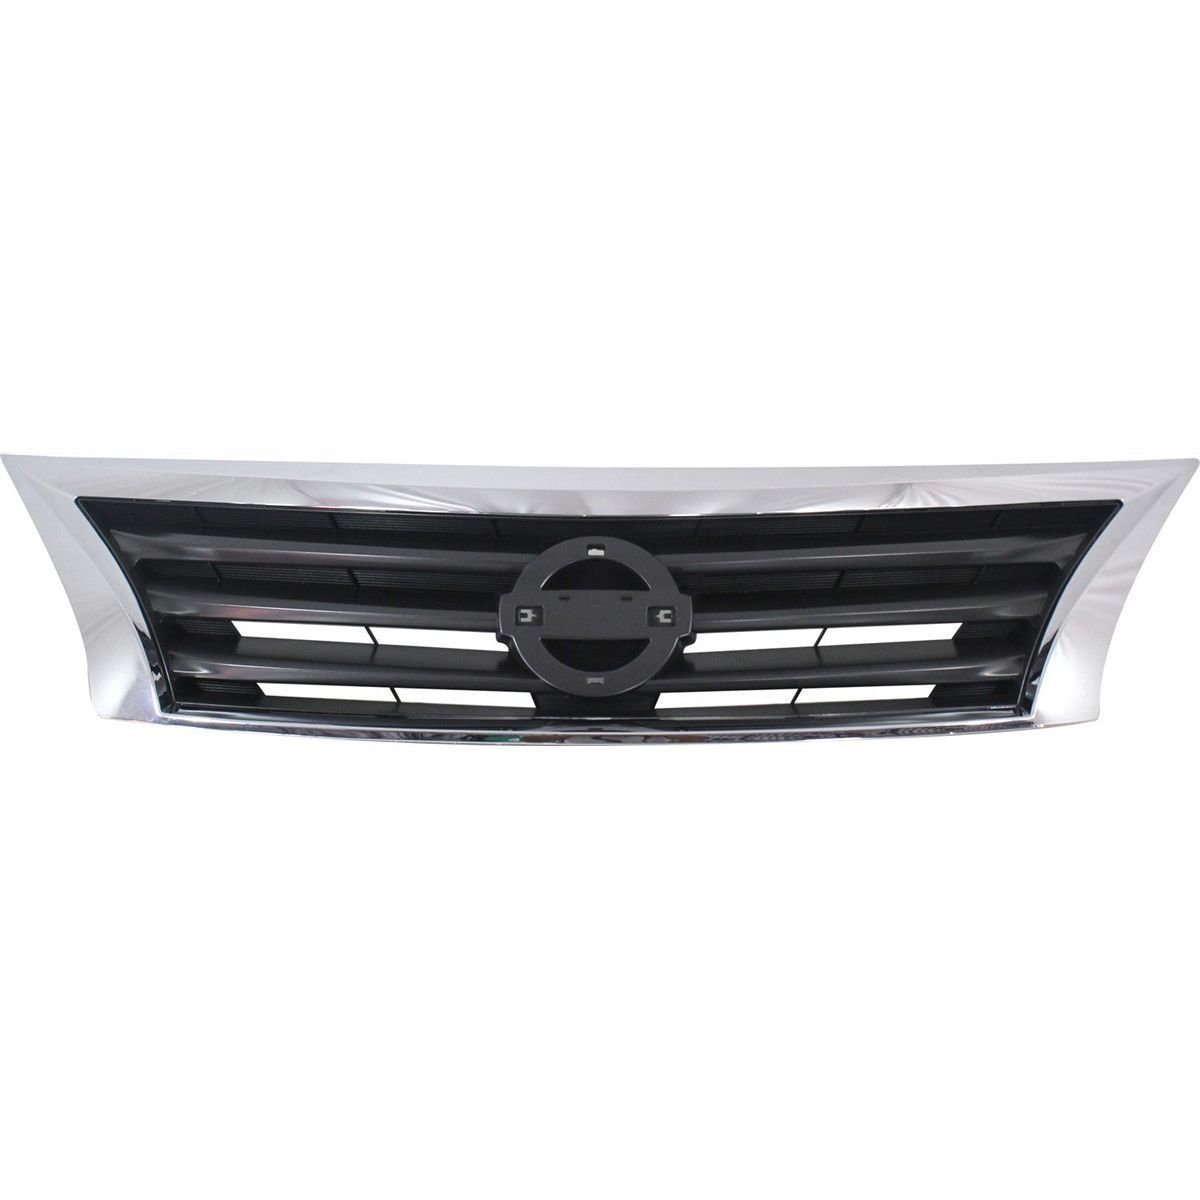 Grille Grill Assembly NI1200250 For 13-15 Nissan Altima SEDAN Chrome Shell with Gray Insert